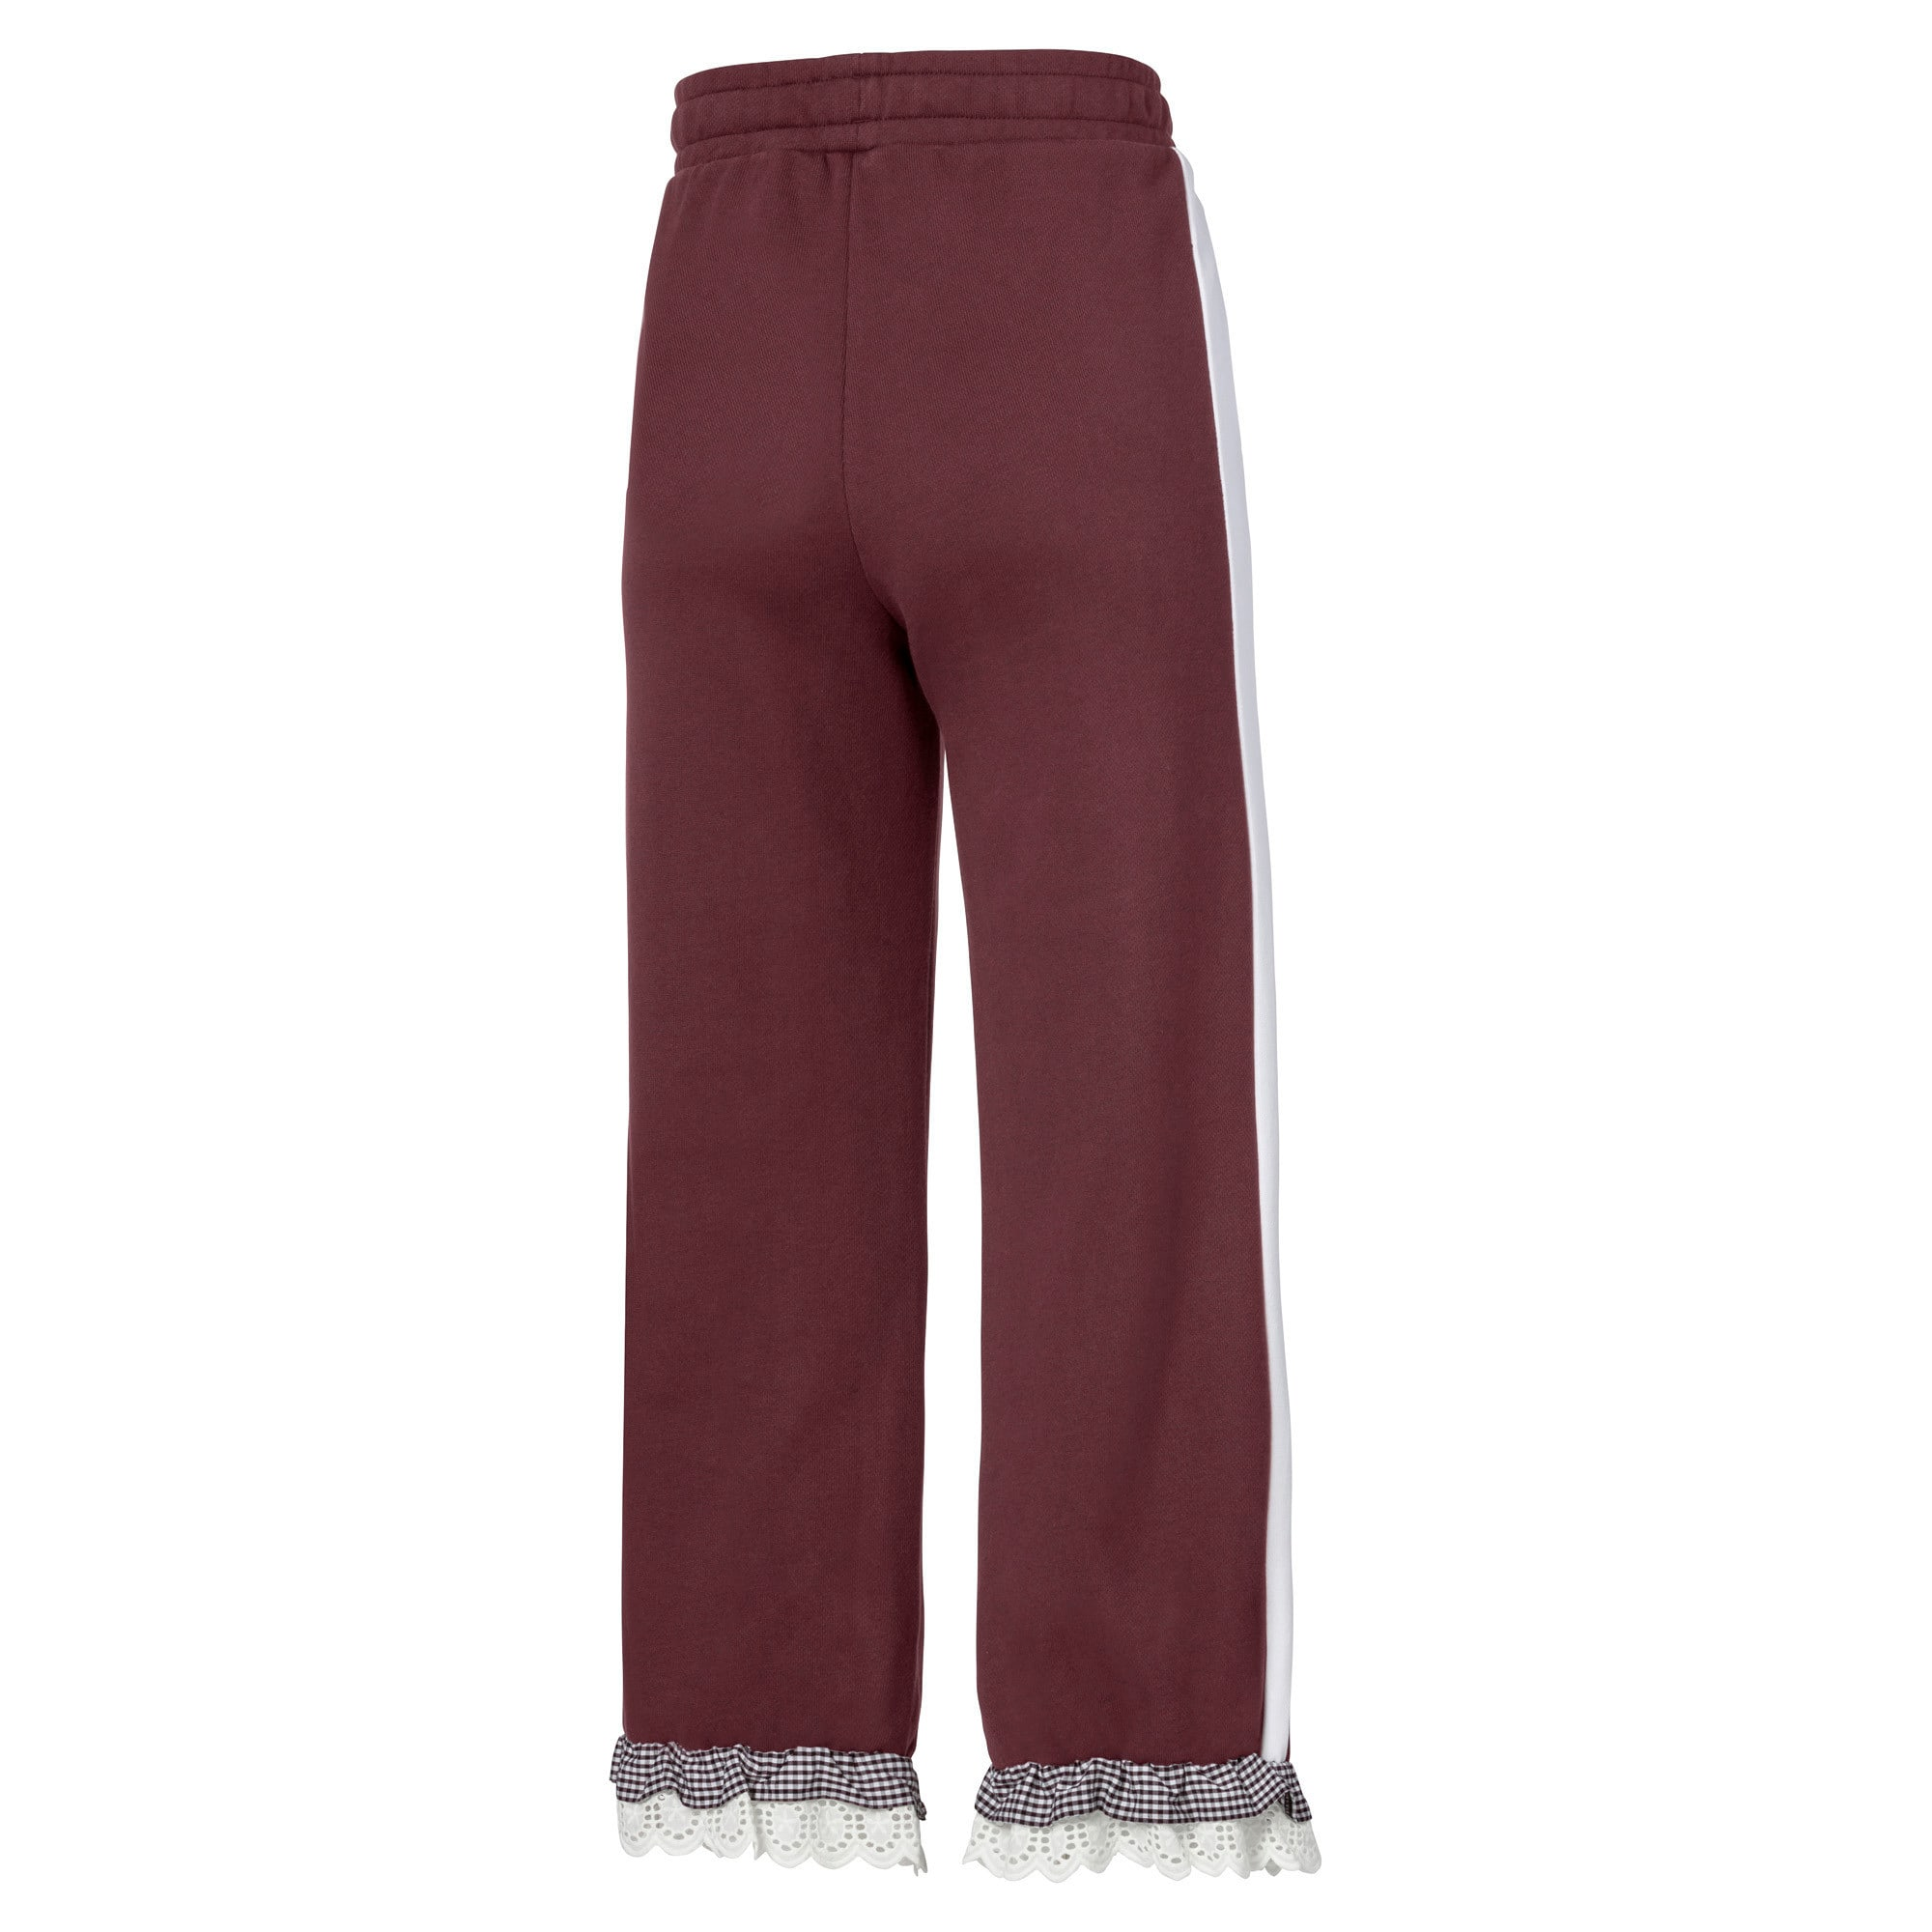 Thumbnail 5 of PUMA x TYAKASHA Knitted Women's Culottes, Vineyard Wine, medium